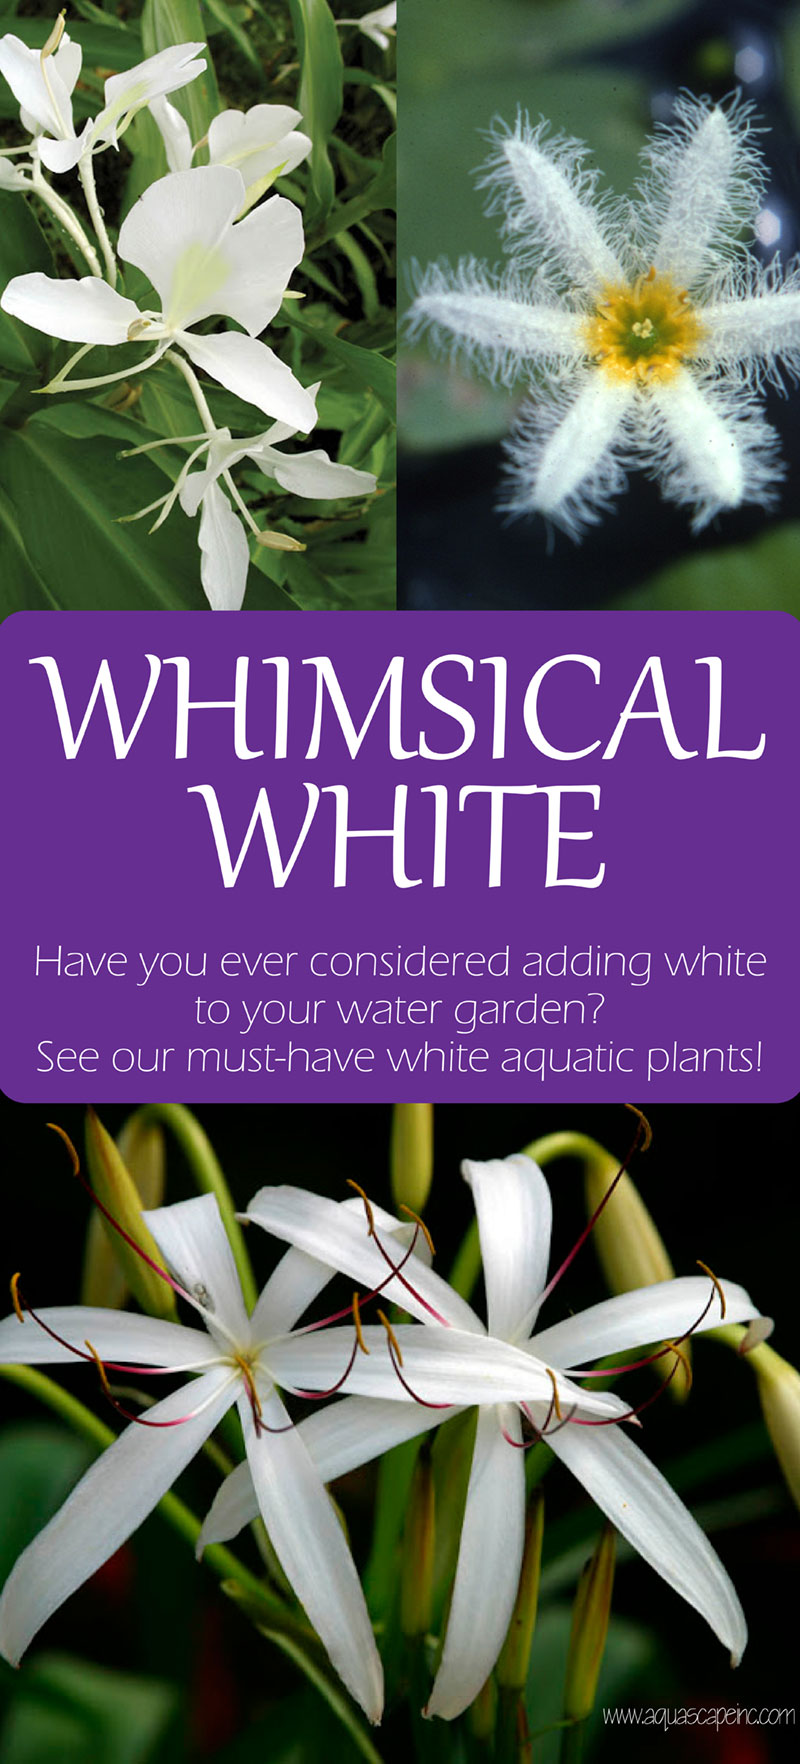 White Aquatic Plants for Your Water Garden